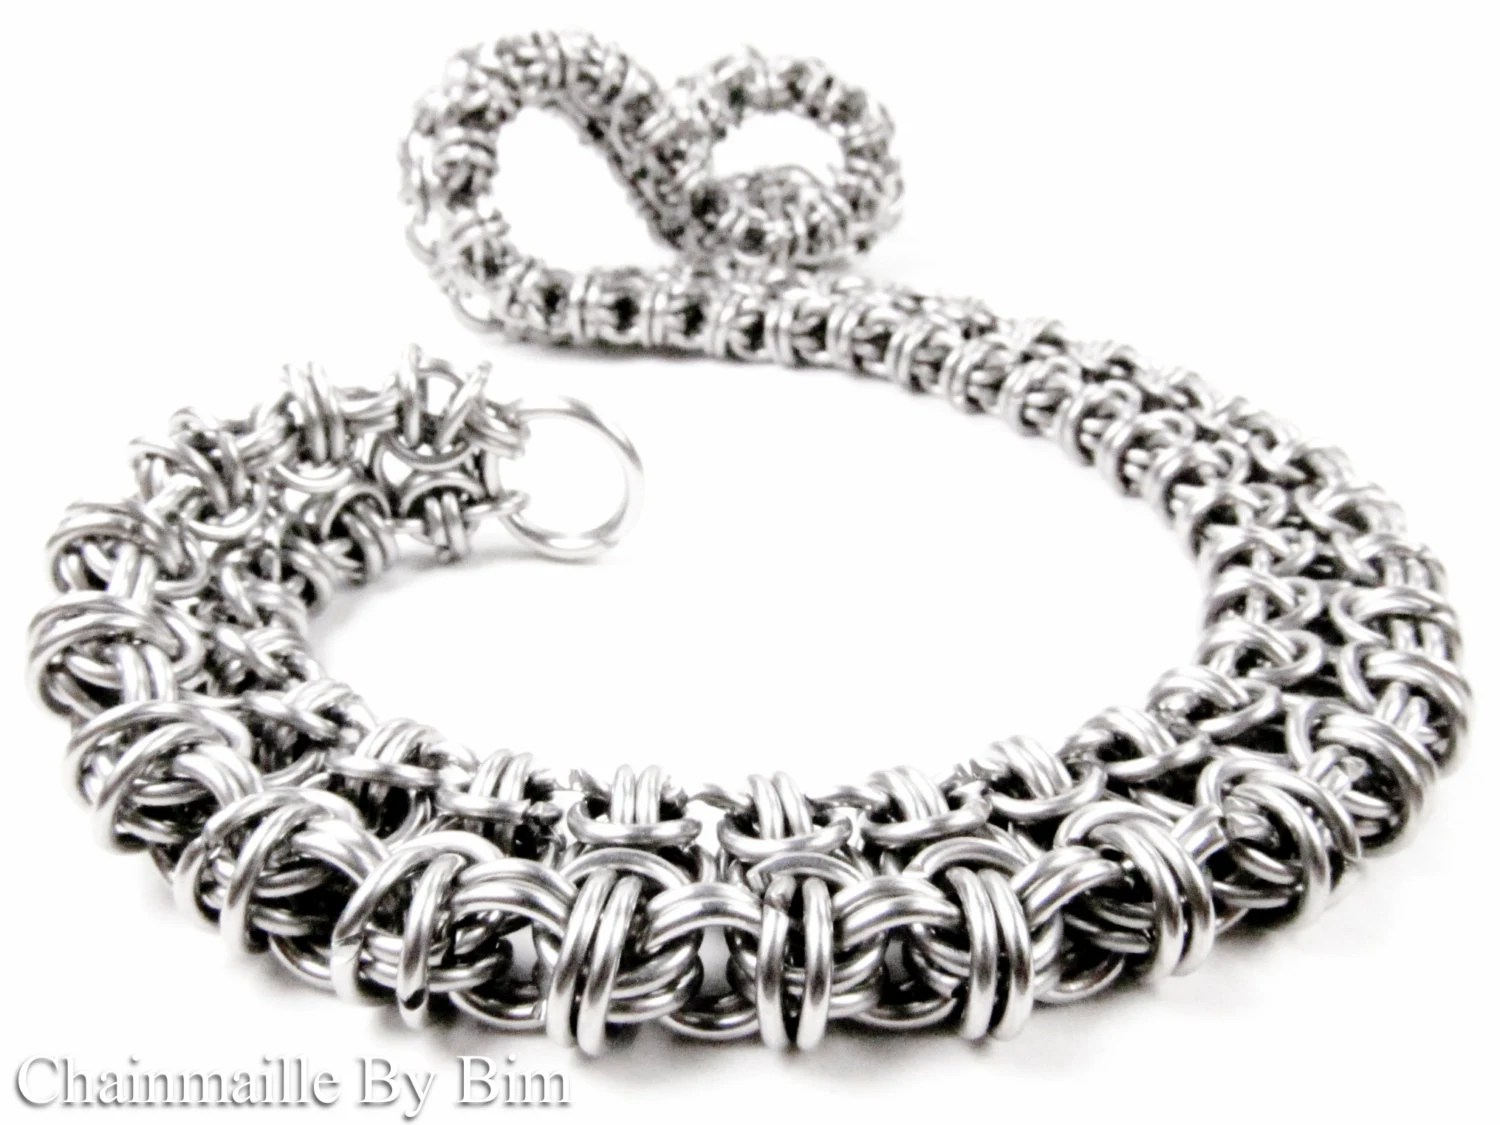 Chainmaille for Everyone by ChainmailleByBim on Etsy